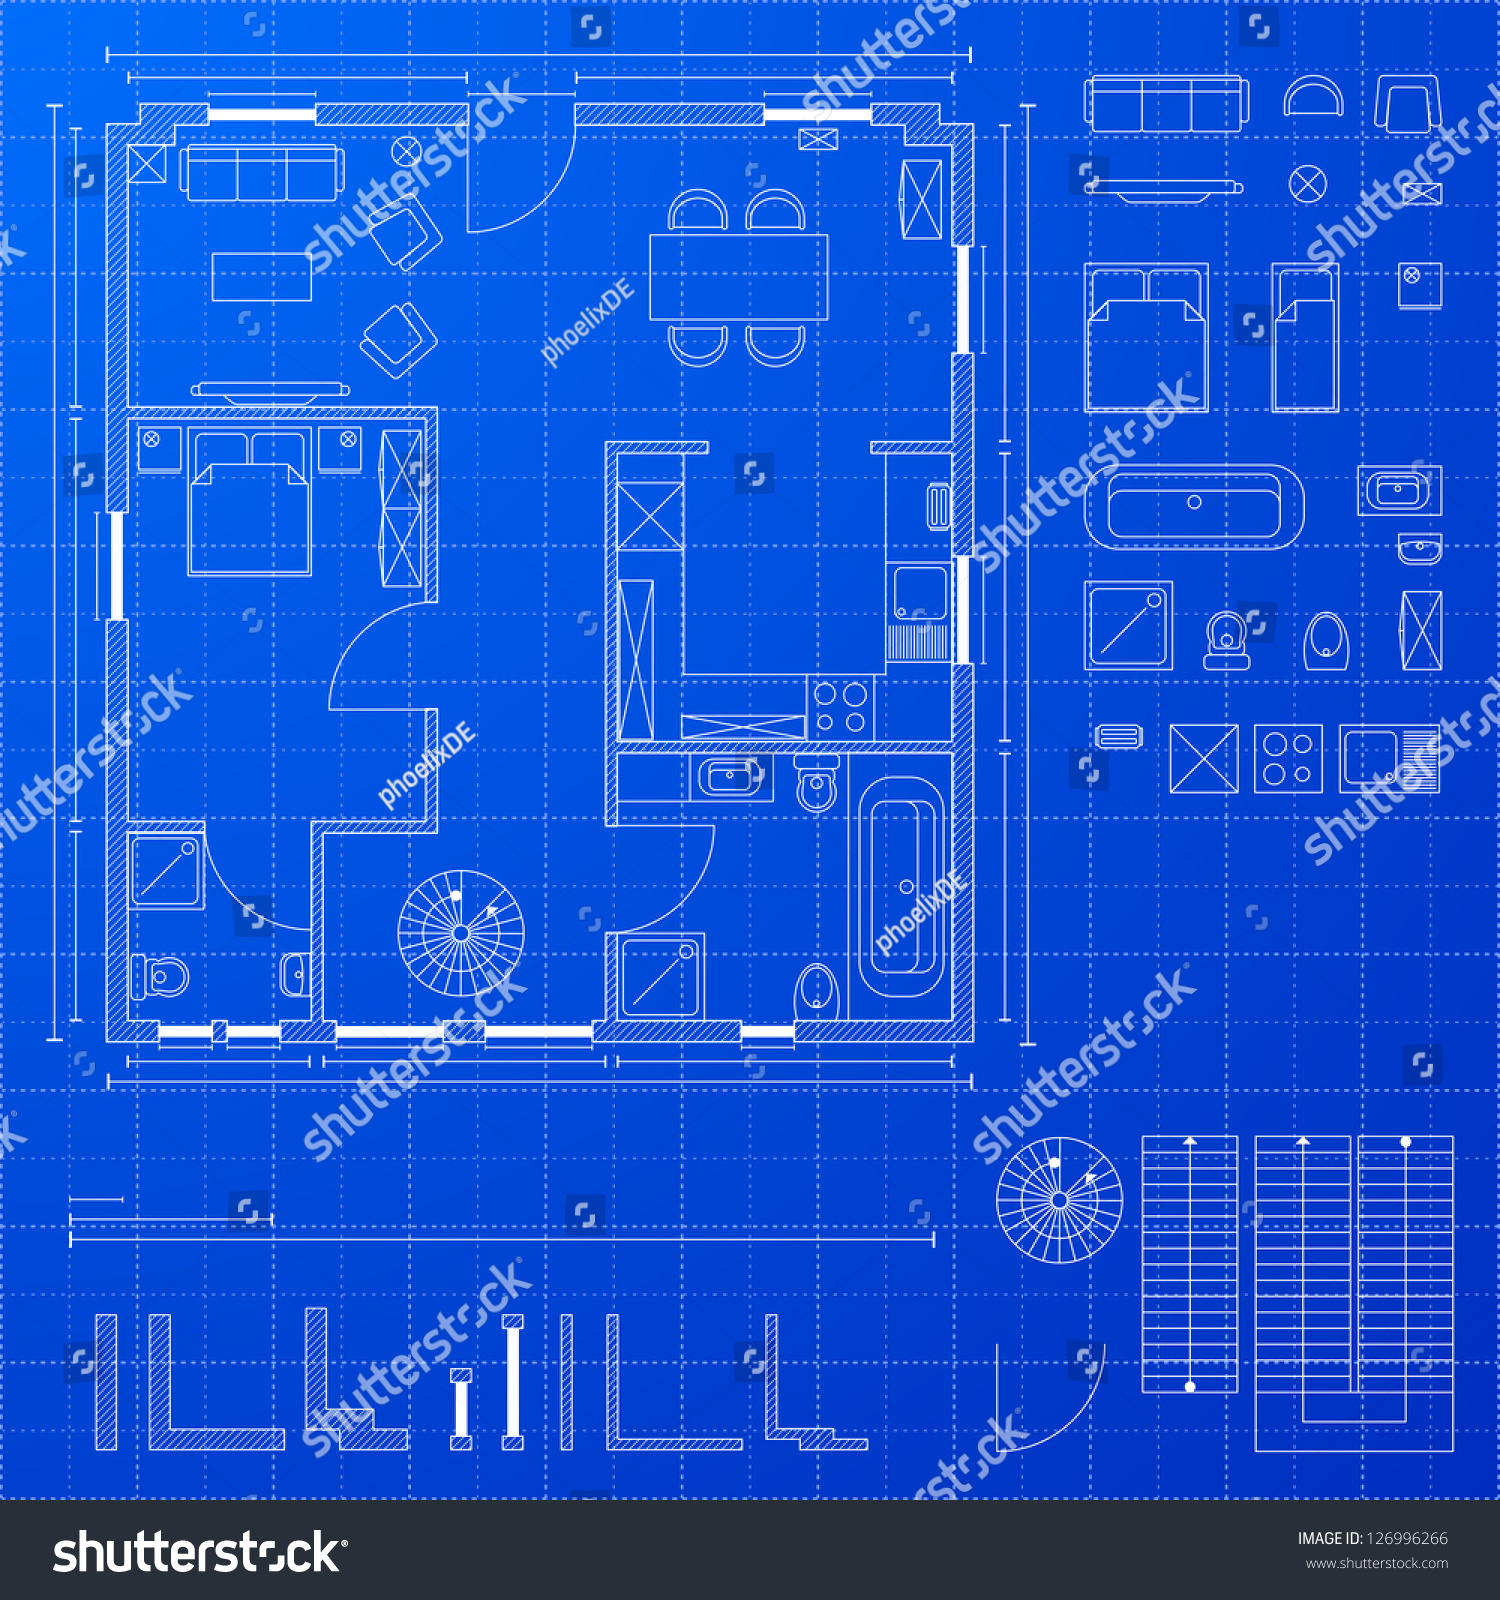 Detailed illustration blueprint floorplan various design vectores en detailed illustration of a blueprint floorplan with various design elements eps 10 malvernweather Images